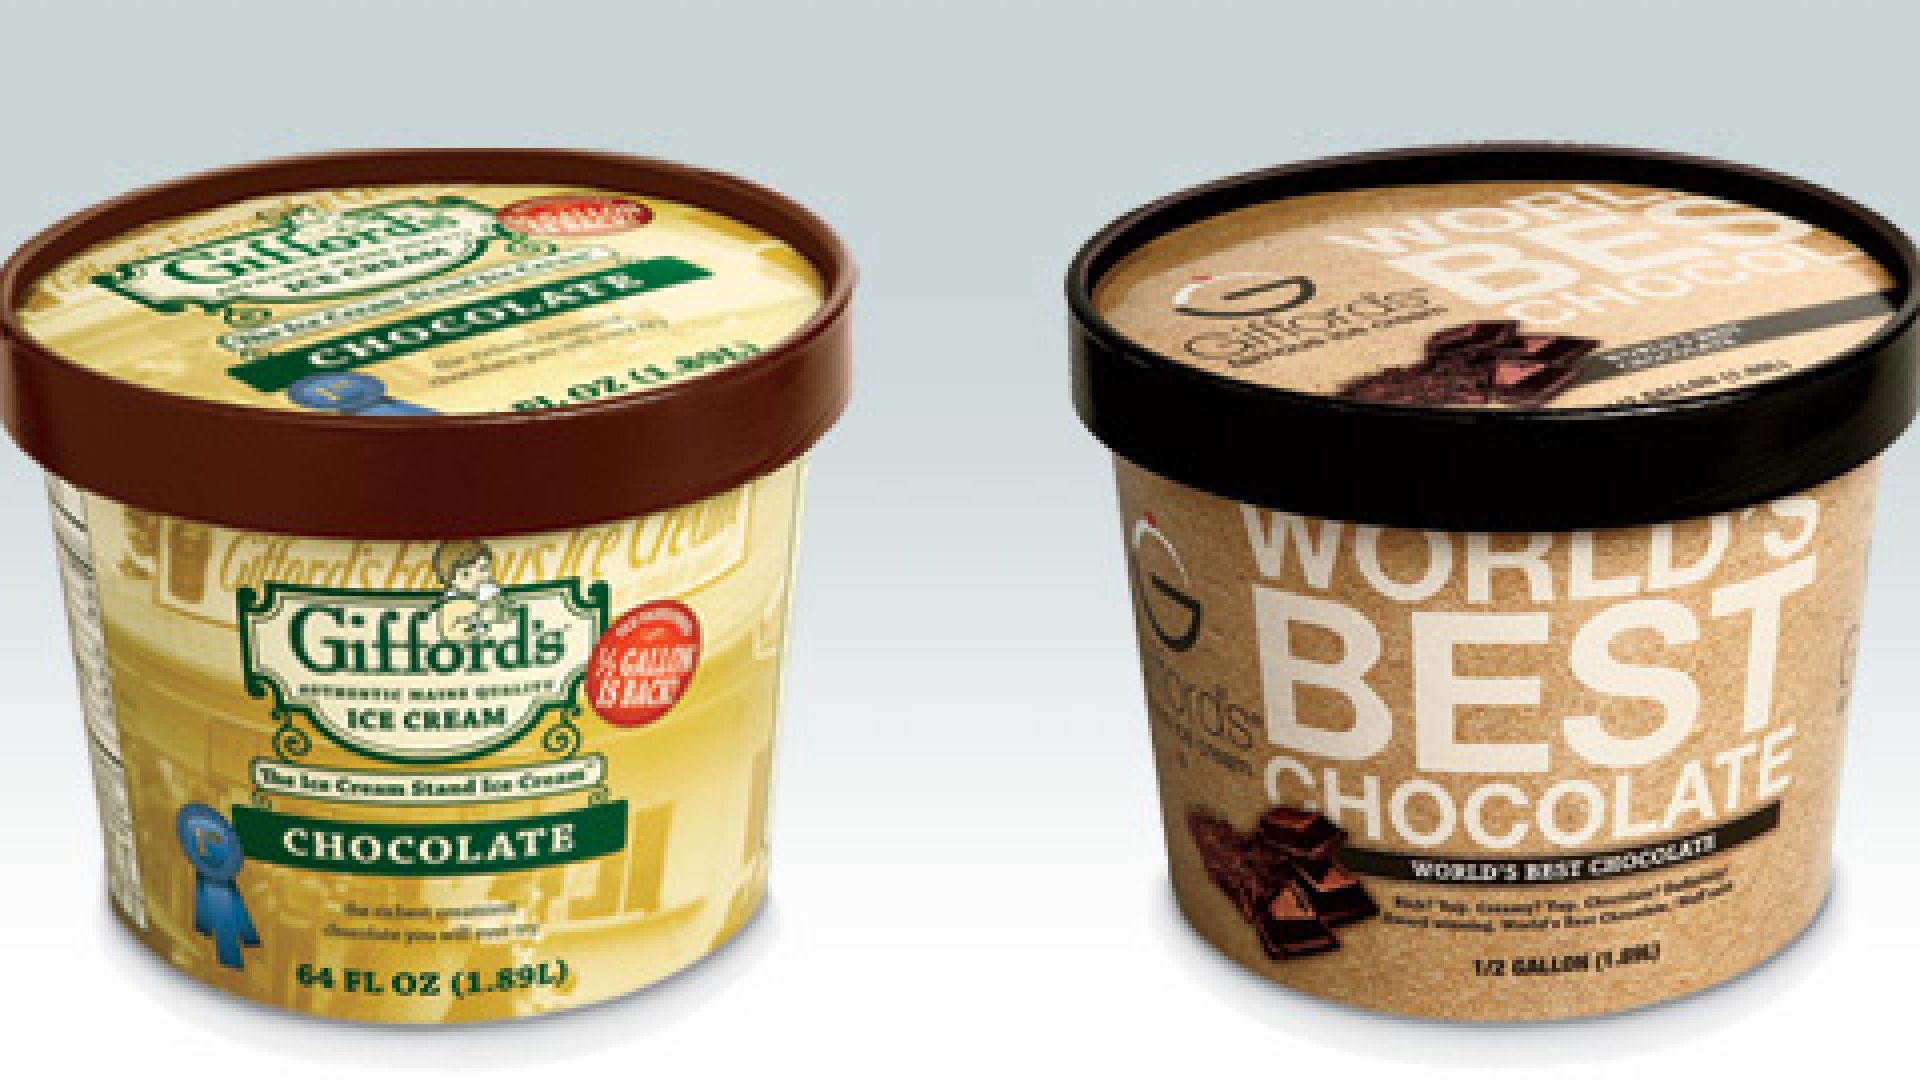 Will Shoppers Scream for an Ice Cream Maker's New Packaging?